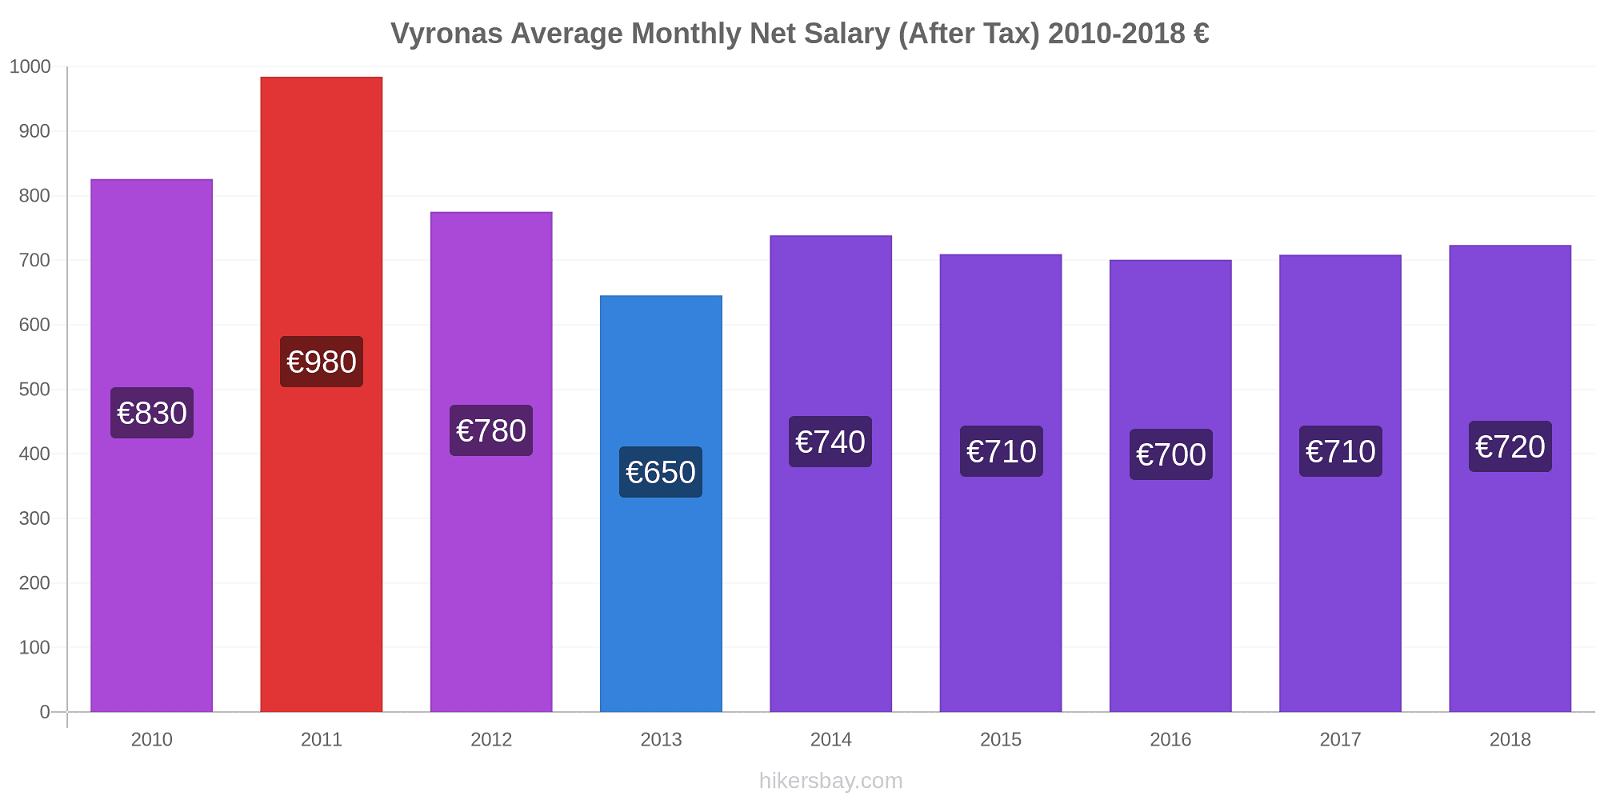 Vyronas price changes Average Monthly Net Salary (After Tax) hikersbay.com